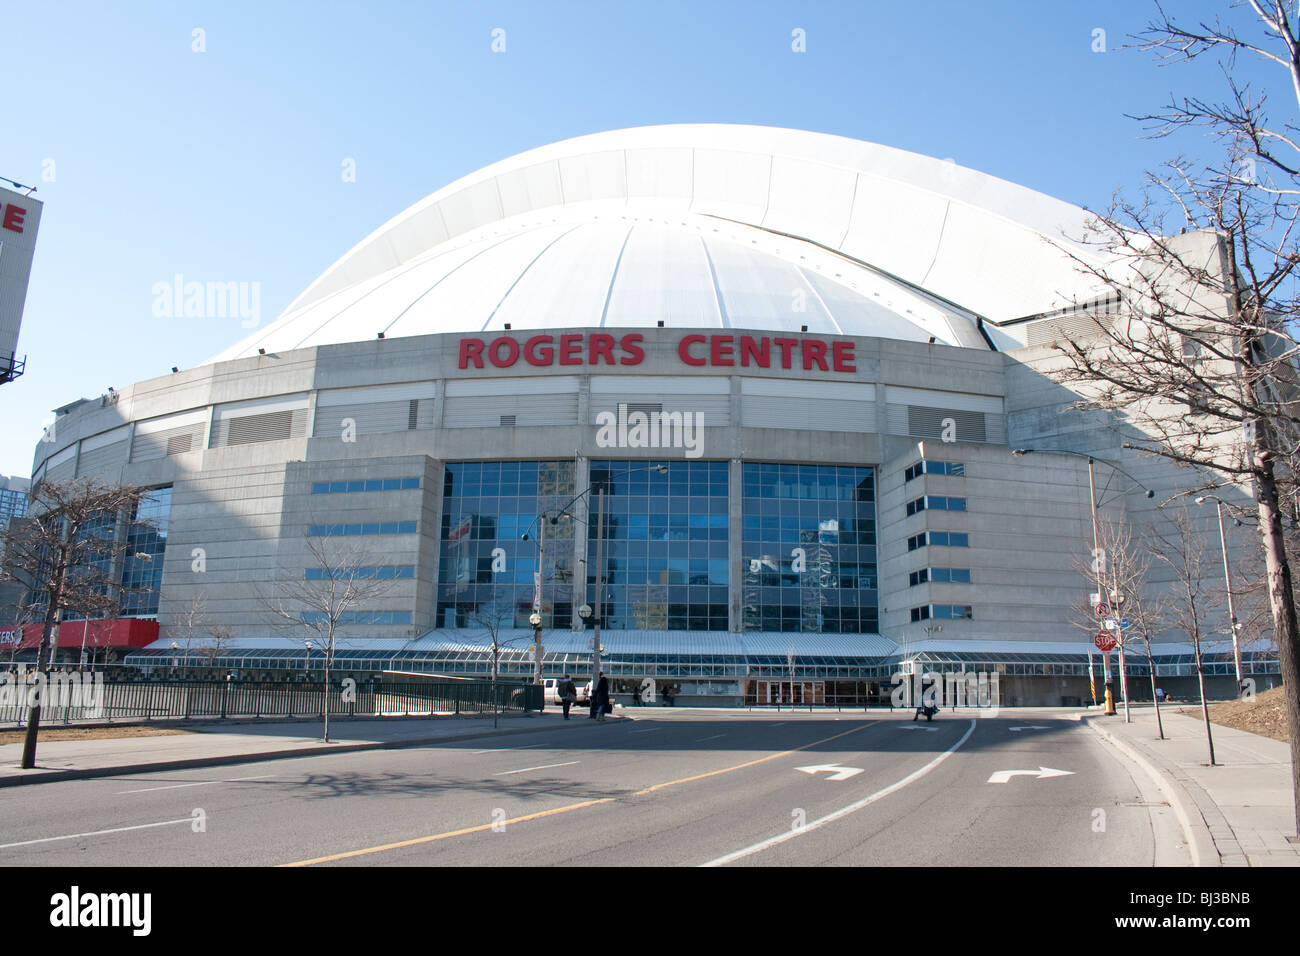 Entrance to the Rogers centre sports stadium, home of the toronto blue jays baseball team - Stock Image